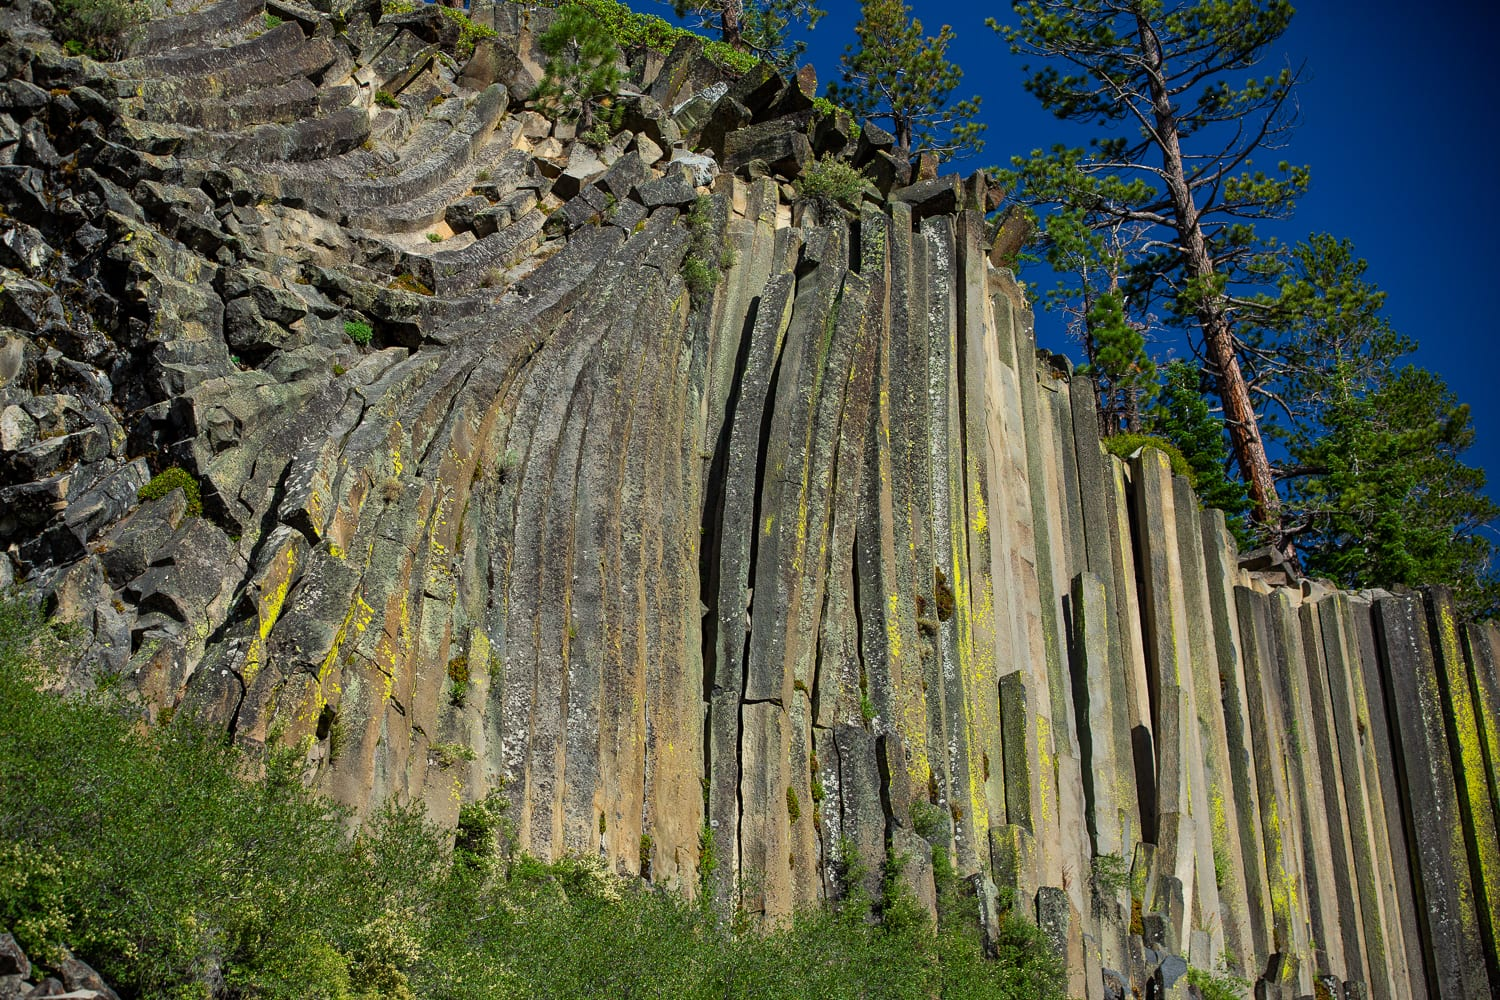 Hexagonal rock pillars tilt at Devil's postpile national monument.